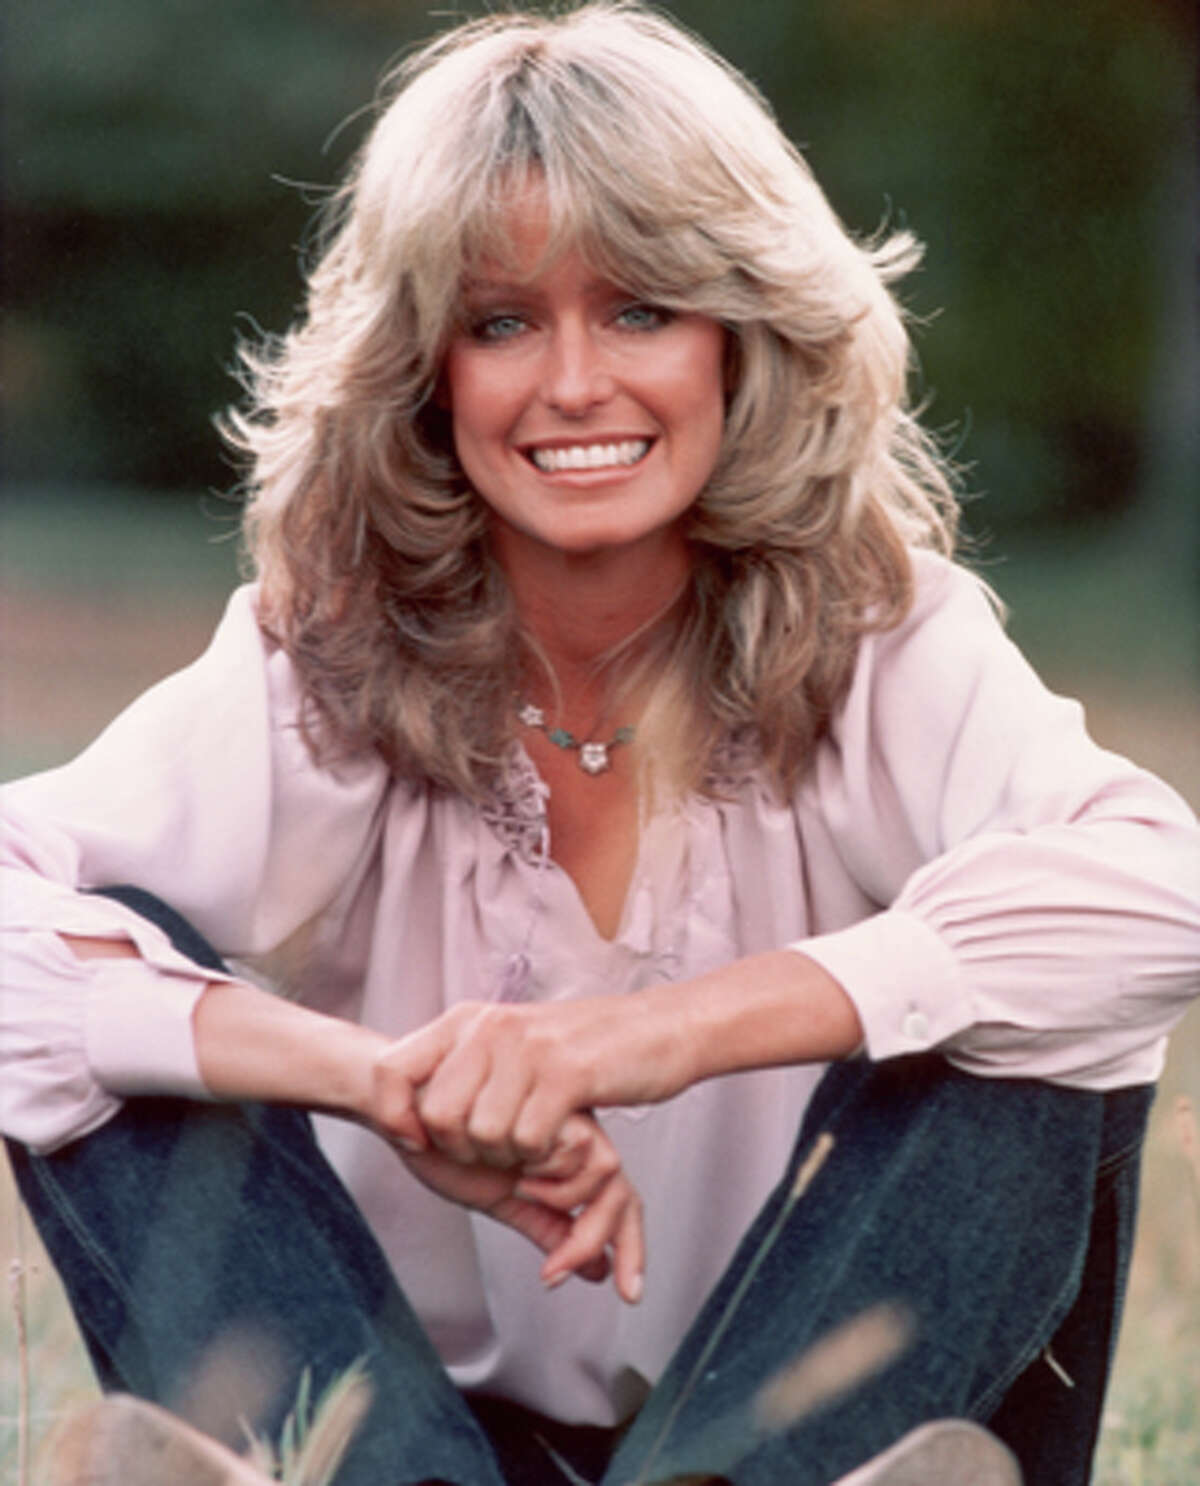 Fawcett, 62, died after a battling cancer on June 25, 2009 in Los Angeles, California.